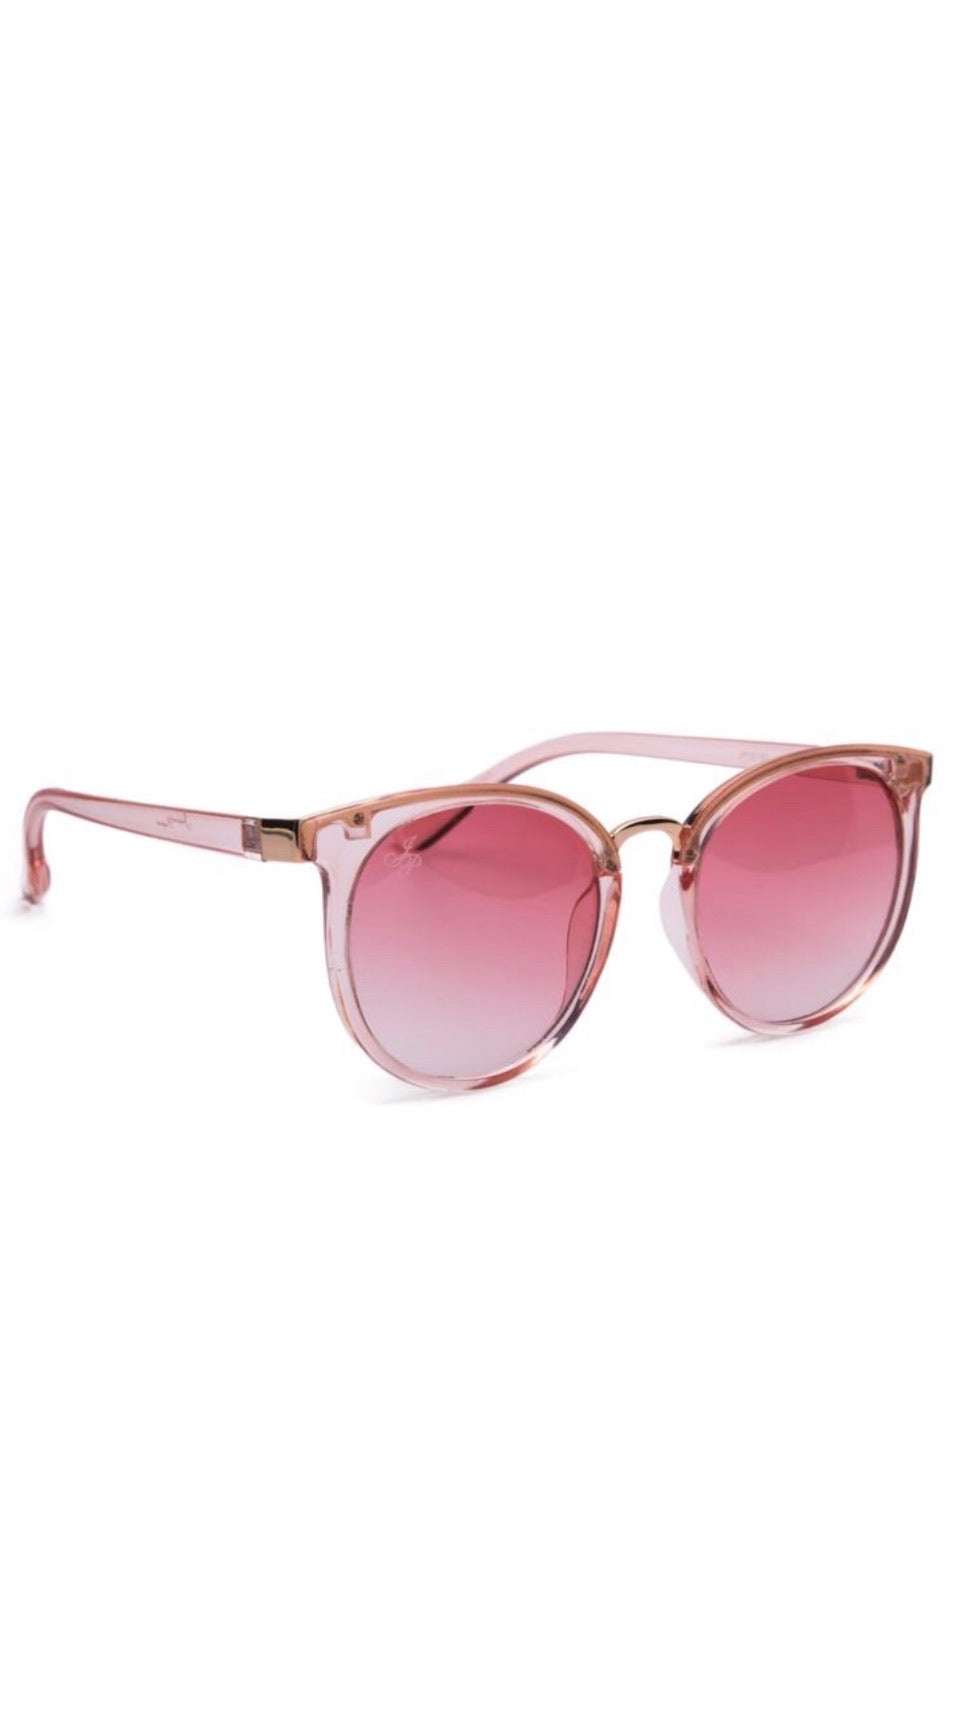 Jeepers Peepers Clear Pink Round Sunglasses